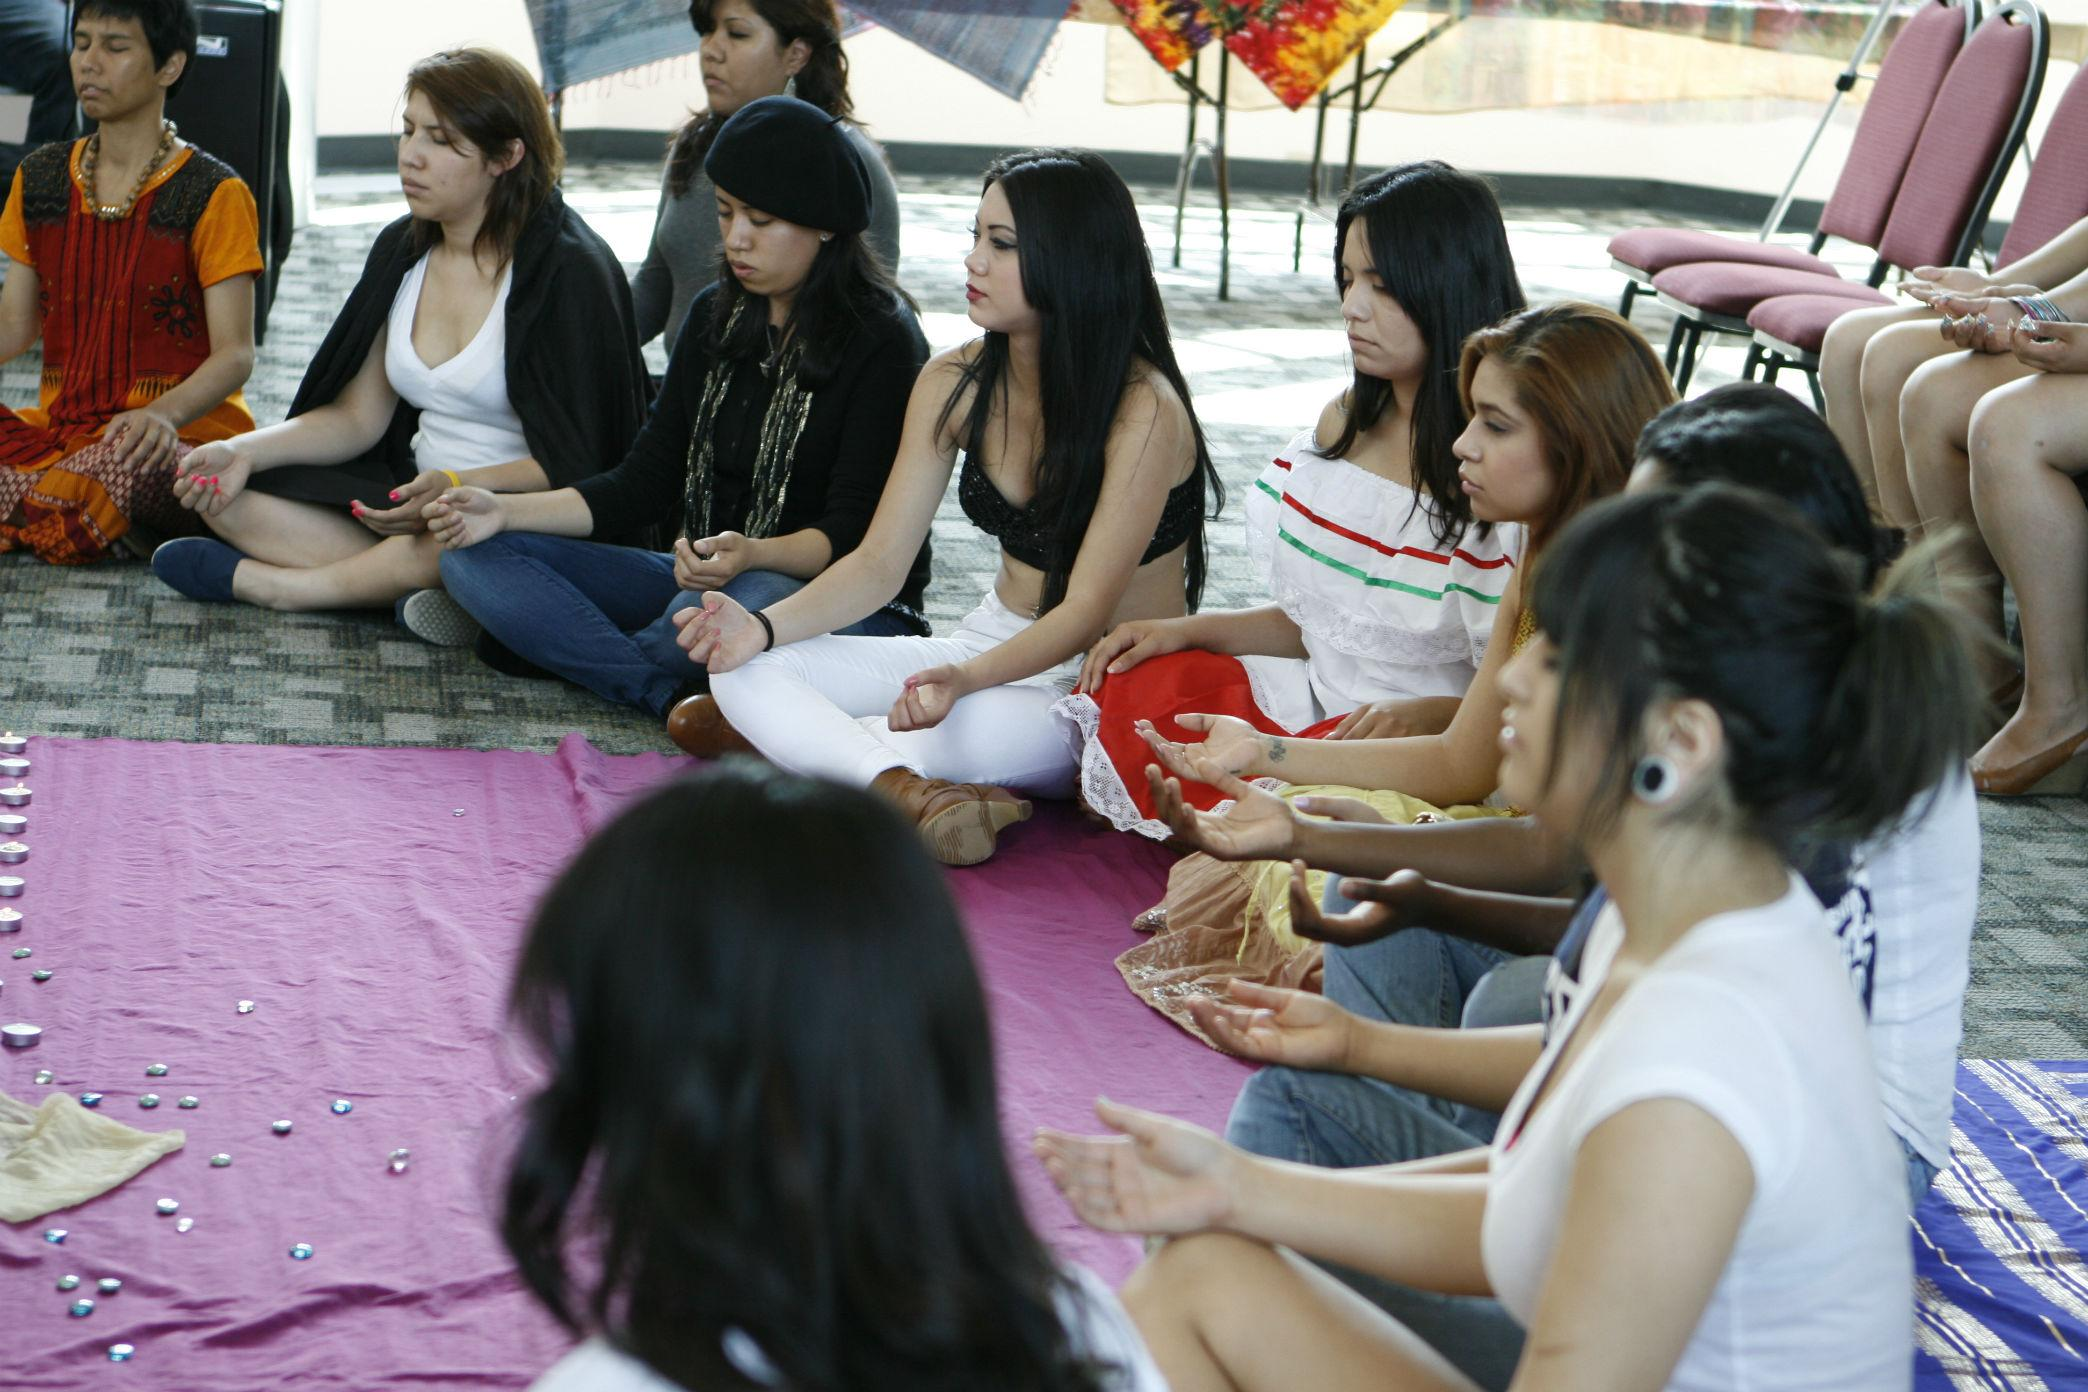 Students take part in the meditation exercise lead by Amelia Soto, a Kundalini Yoga teacher. (Loren Townsley / The Sundial)